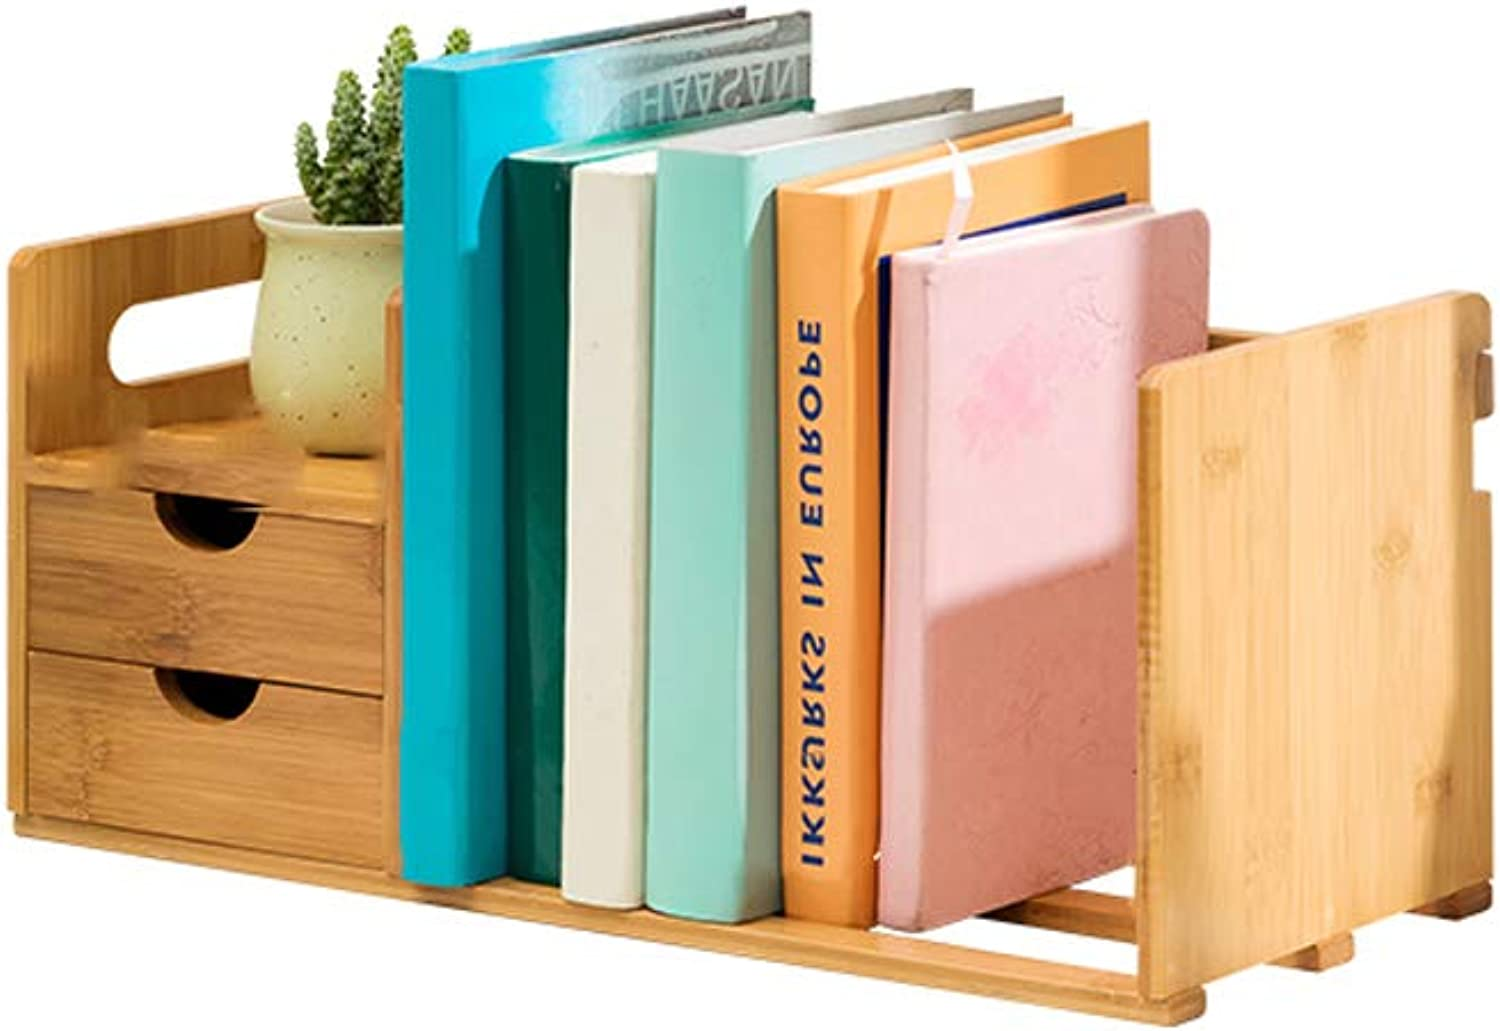 YAXIAO Desktop Bookshelf Simple Desk On The Sundries Book Storage Rack Multi-Layer Double Drawer Bookcase 50x19x21cm Bookshelf